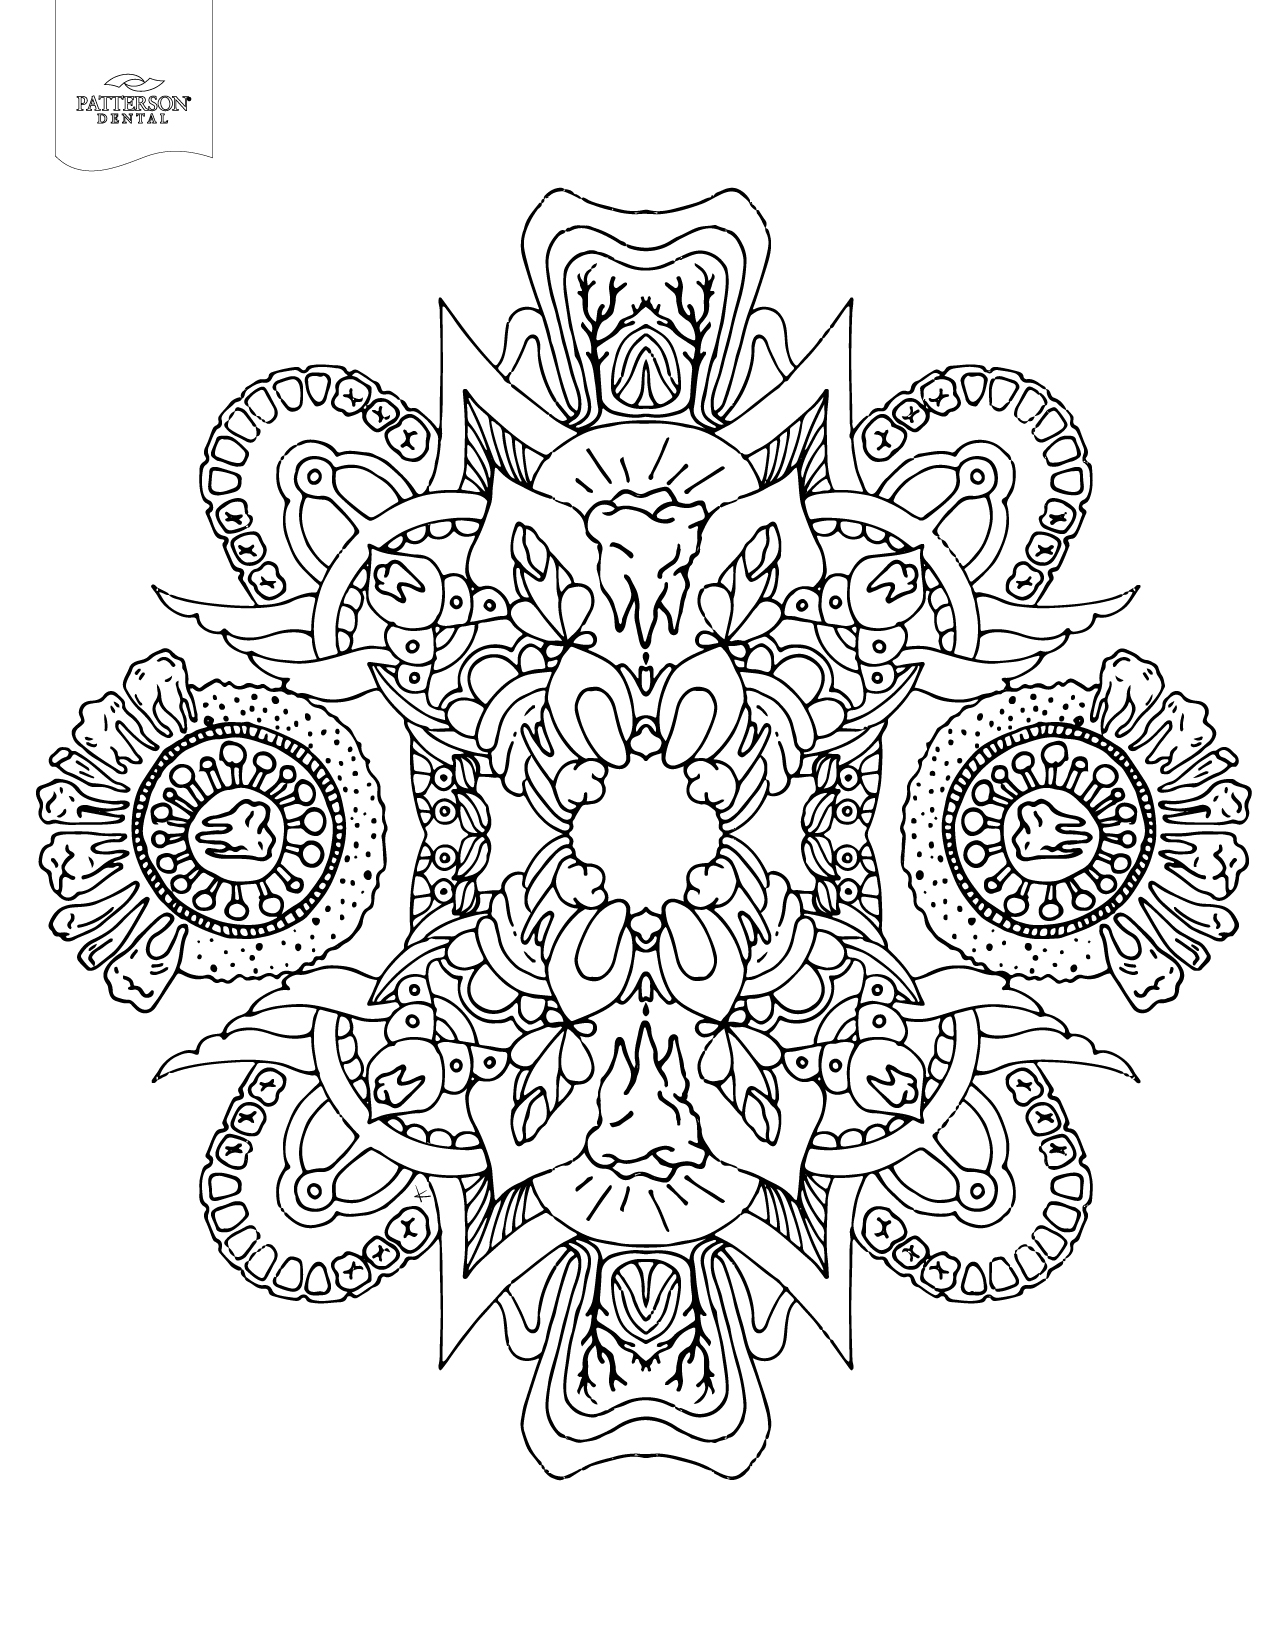 full size coloring sheets full size coloring pages coloring home sheets full coloring size